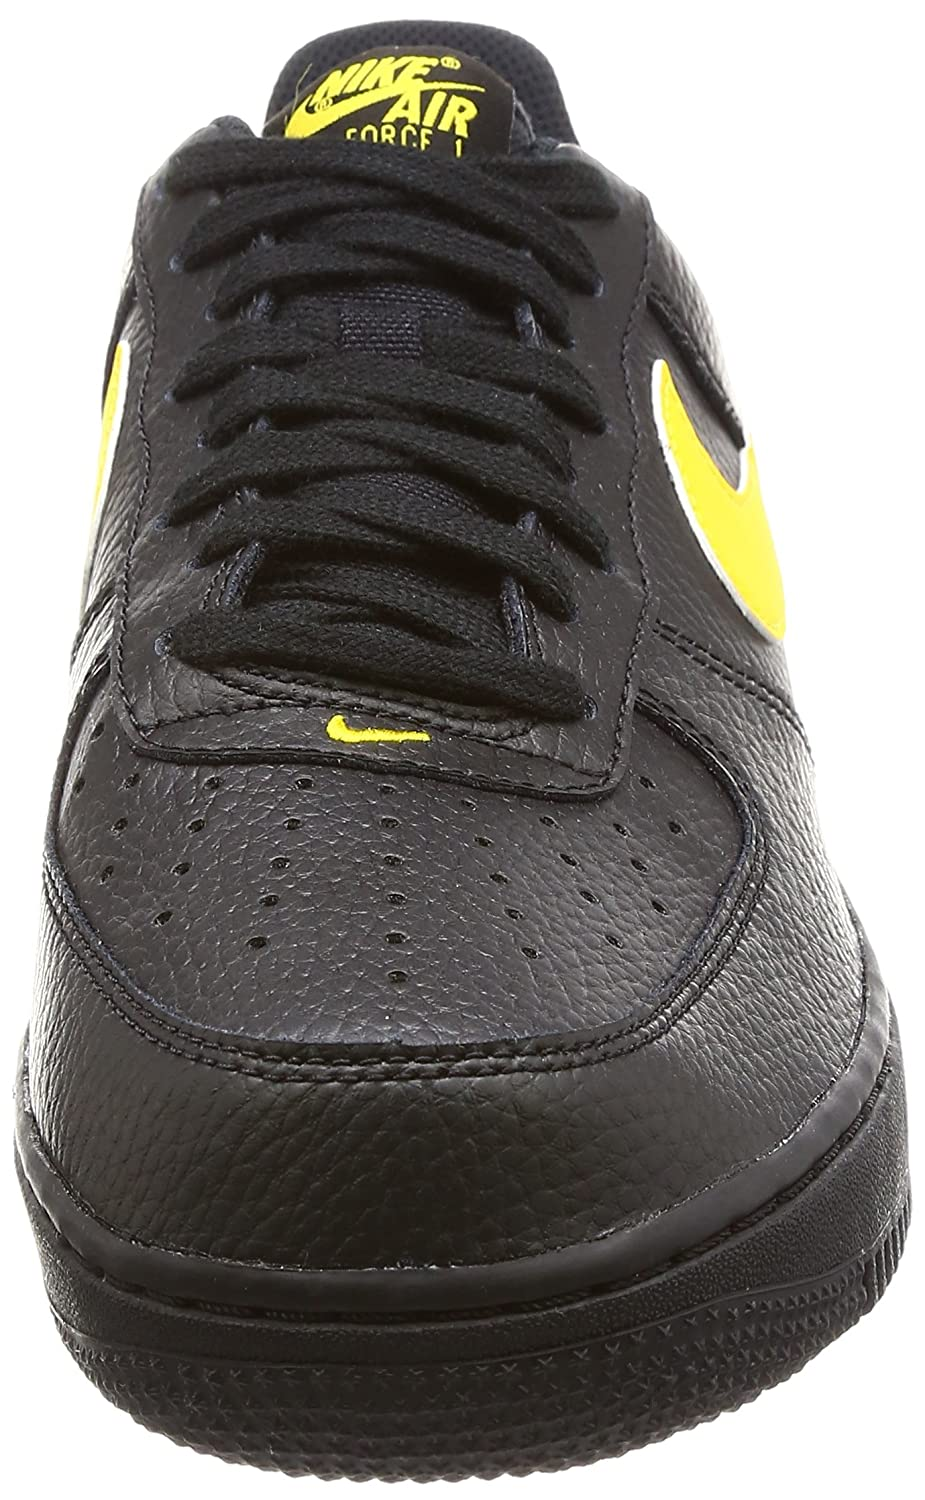 Men's/Women's Men's/Women's Men's/Women's Nike Air Force 1, Men's Trainers High quality and low overhead New products in 2018 British temperament fe9444